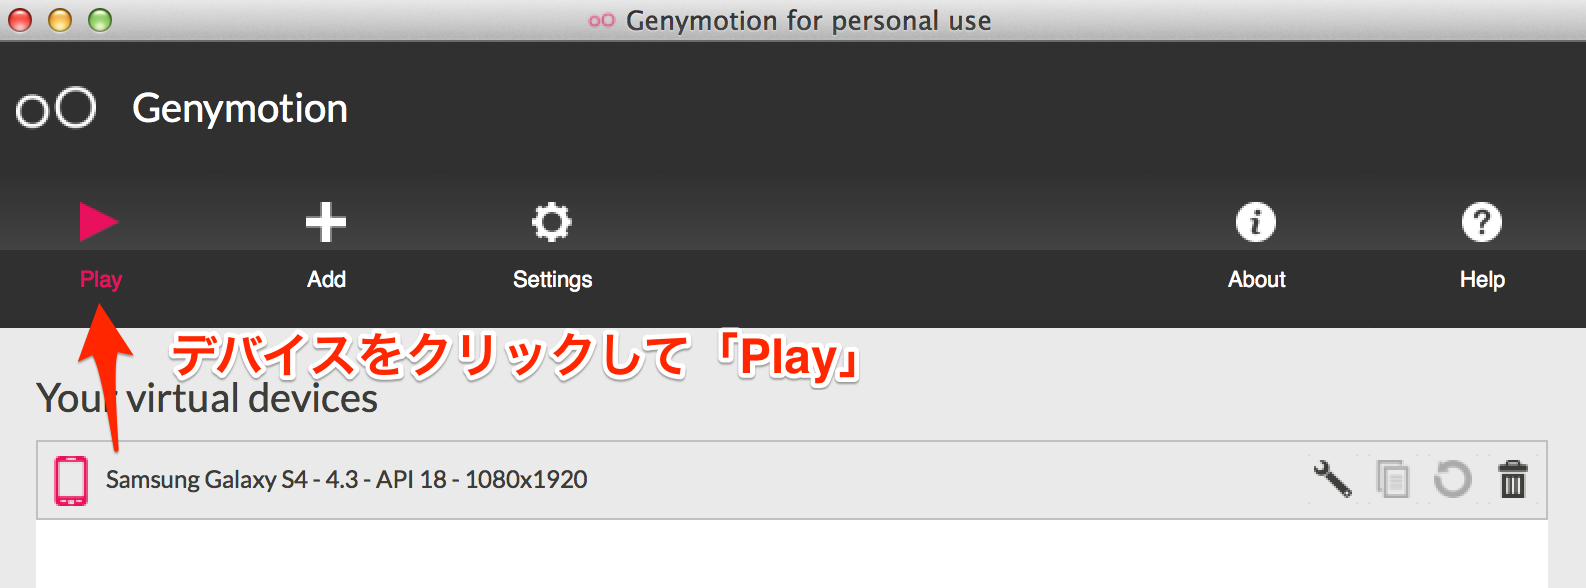 genymotion12.png